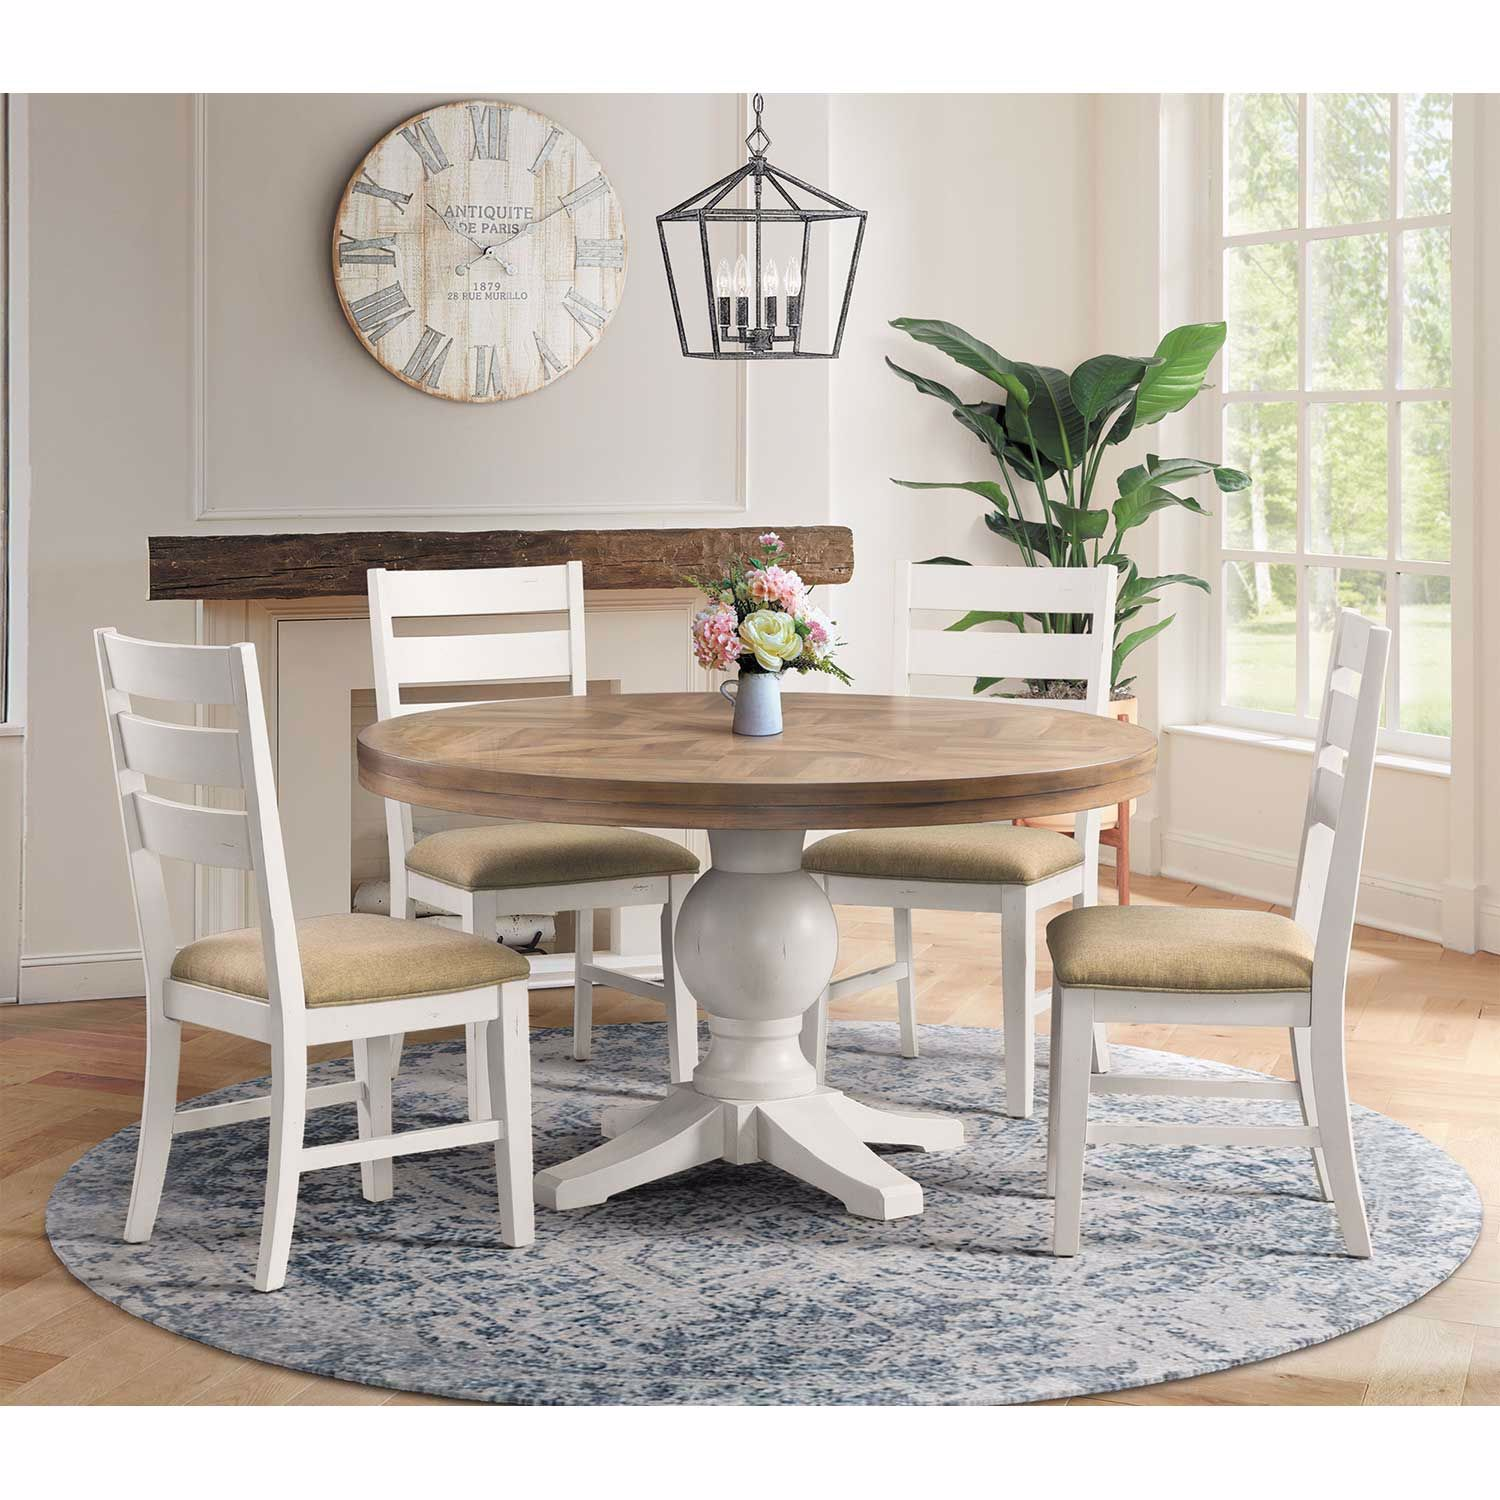 Picture of Park Creek 5 Piece Round Table Set